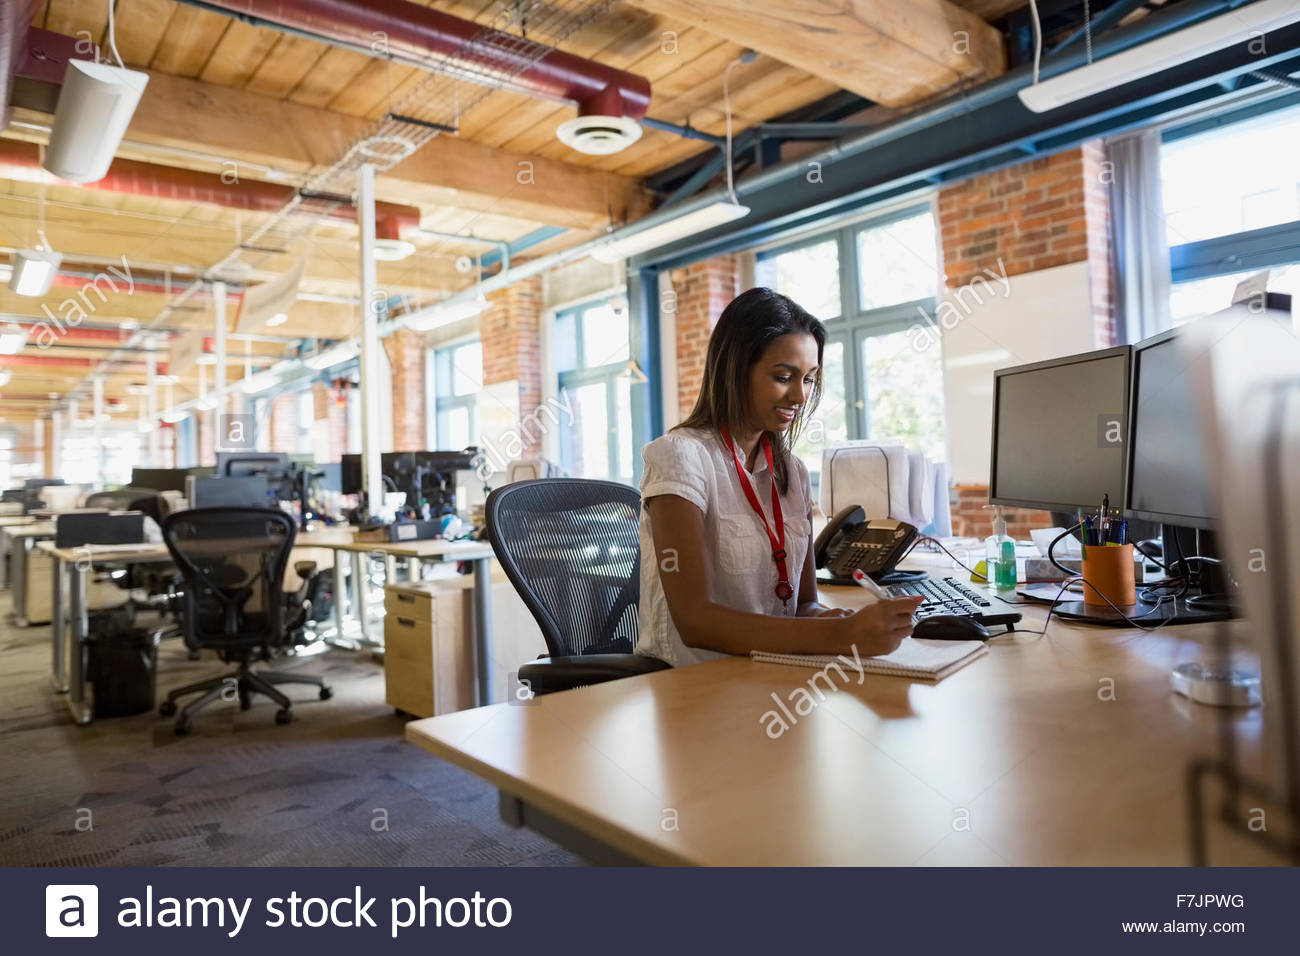 Woman at office desk Photo Stock